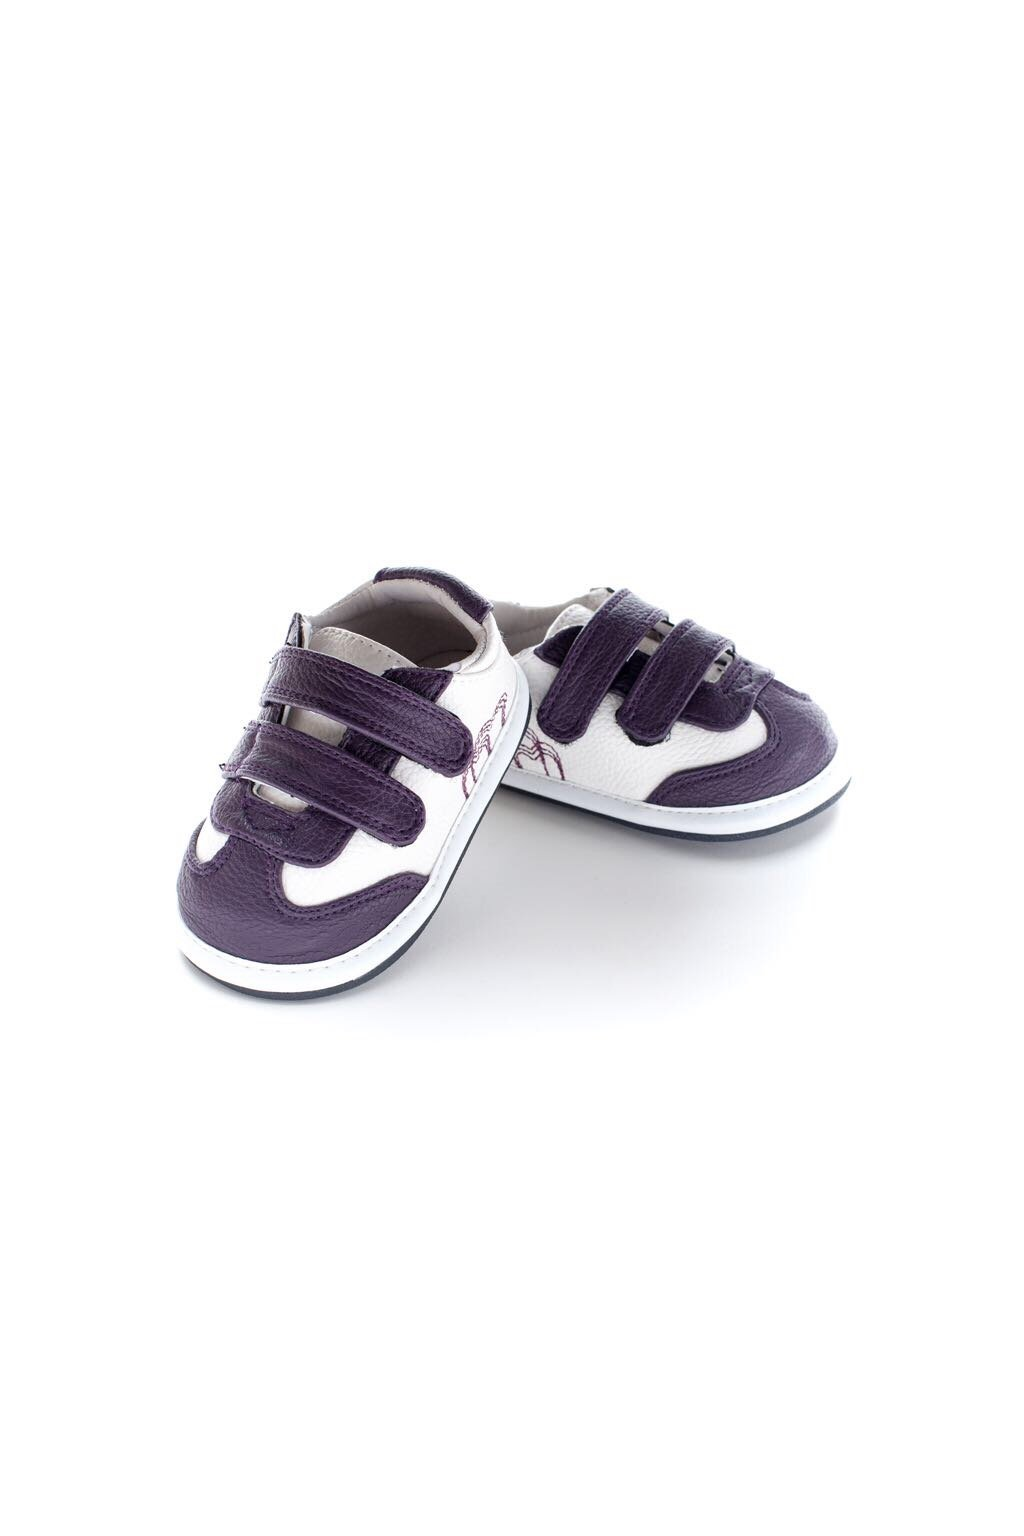 Jack and Lily Double Strap White/Purple